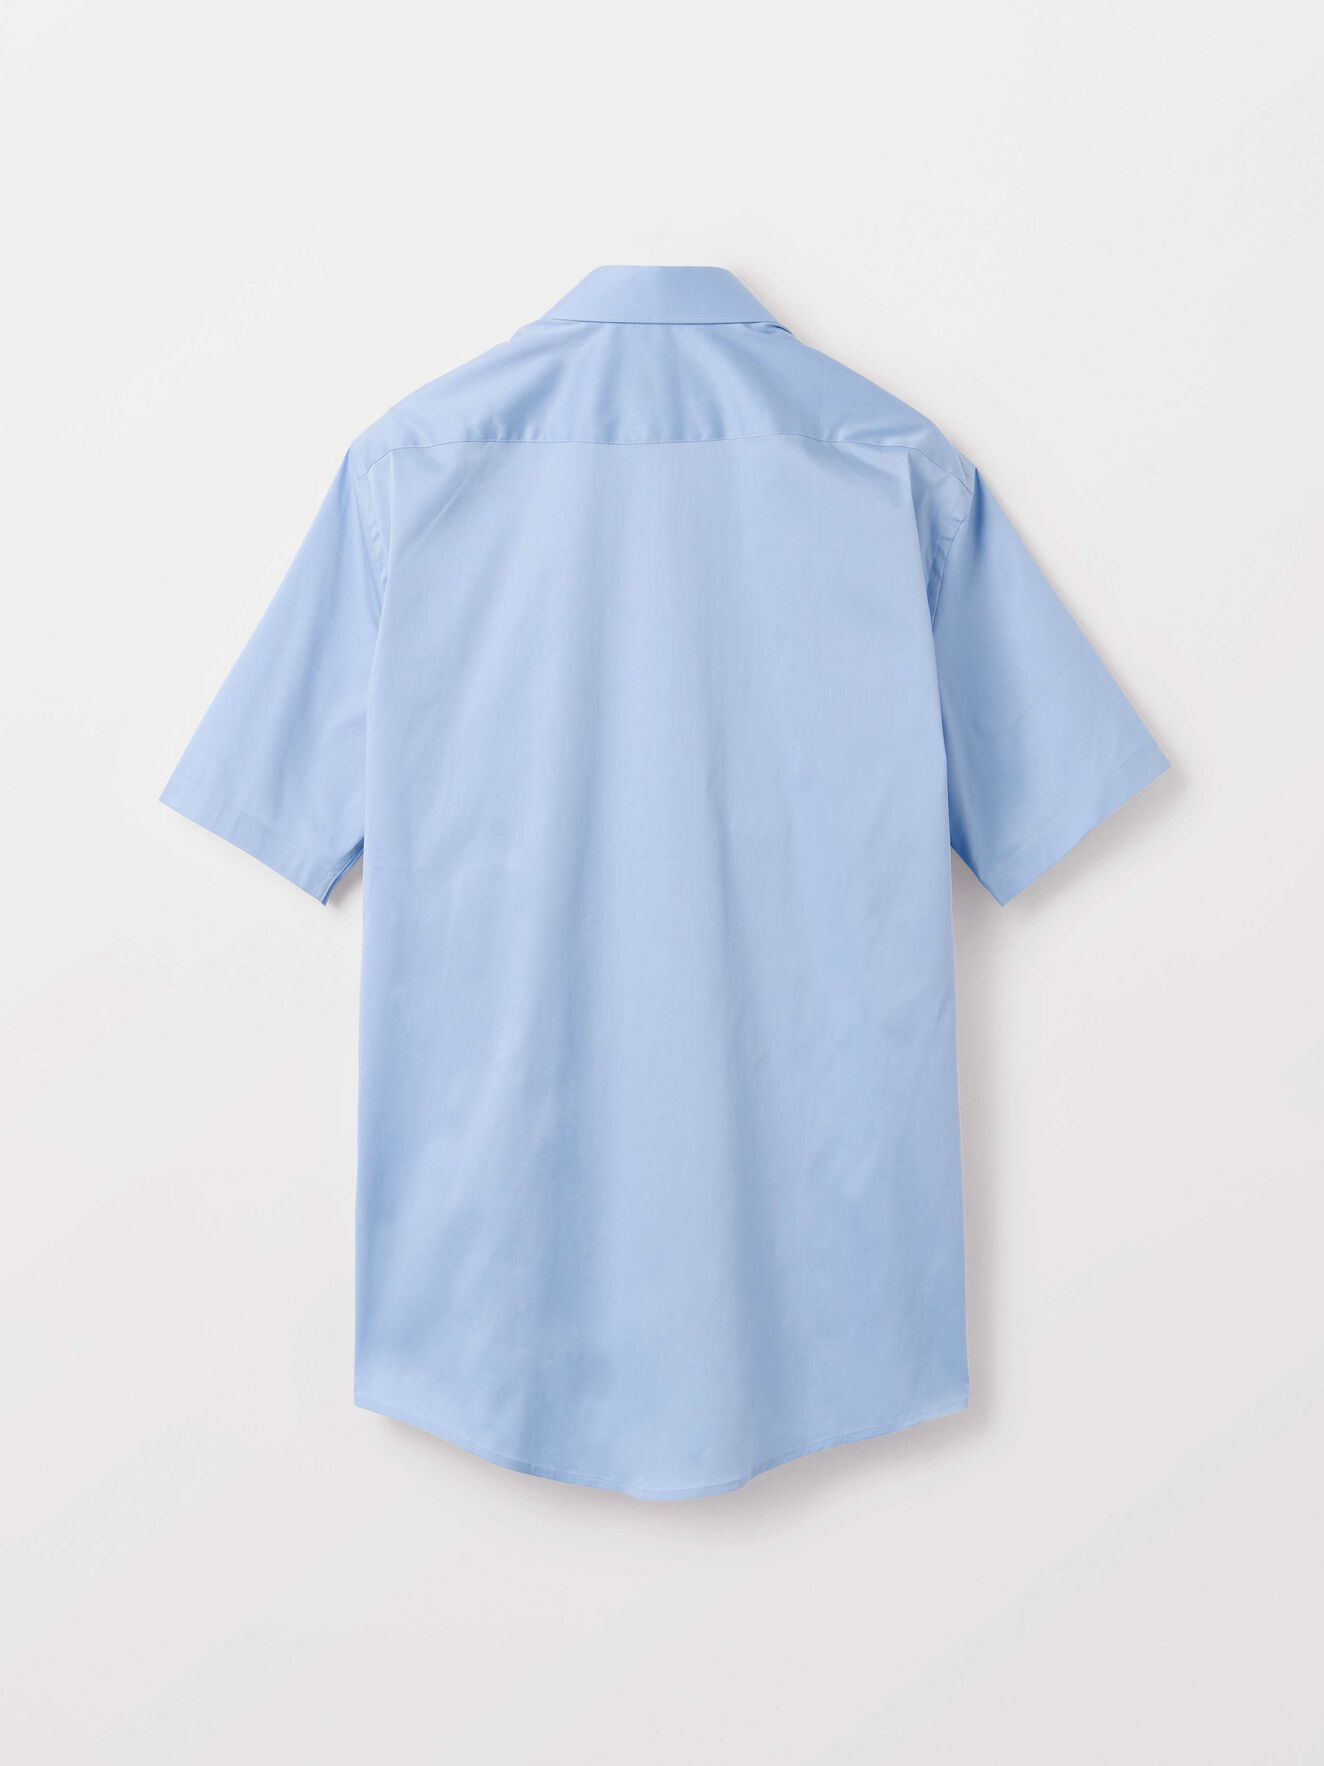 Fonzo Shirt in Airy Blue from Tiger of Sweden